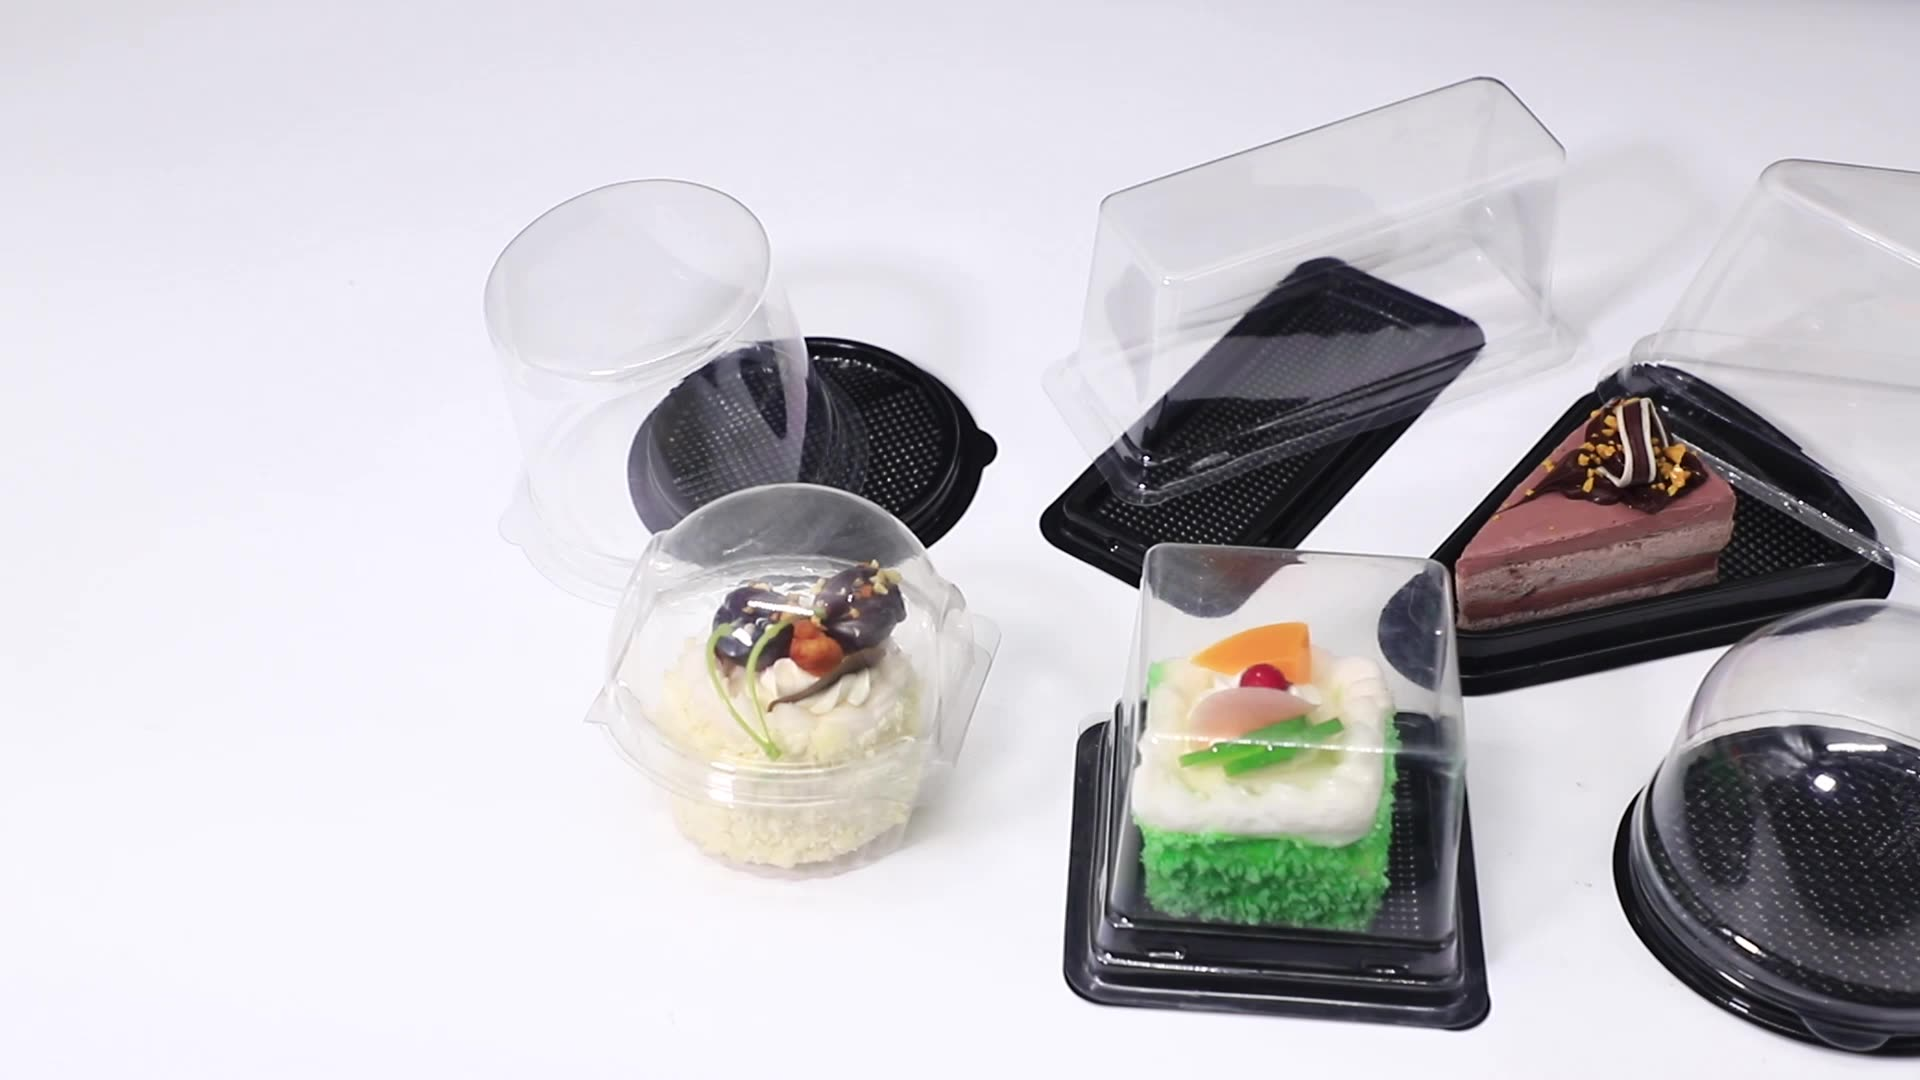 Mini Cake Box Container Food Packcake Case Packing Tray Plastic Customize PET Clear Disposable Stamping Transparent Accept